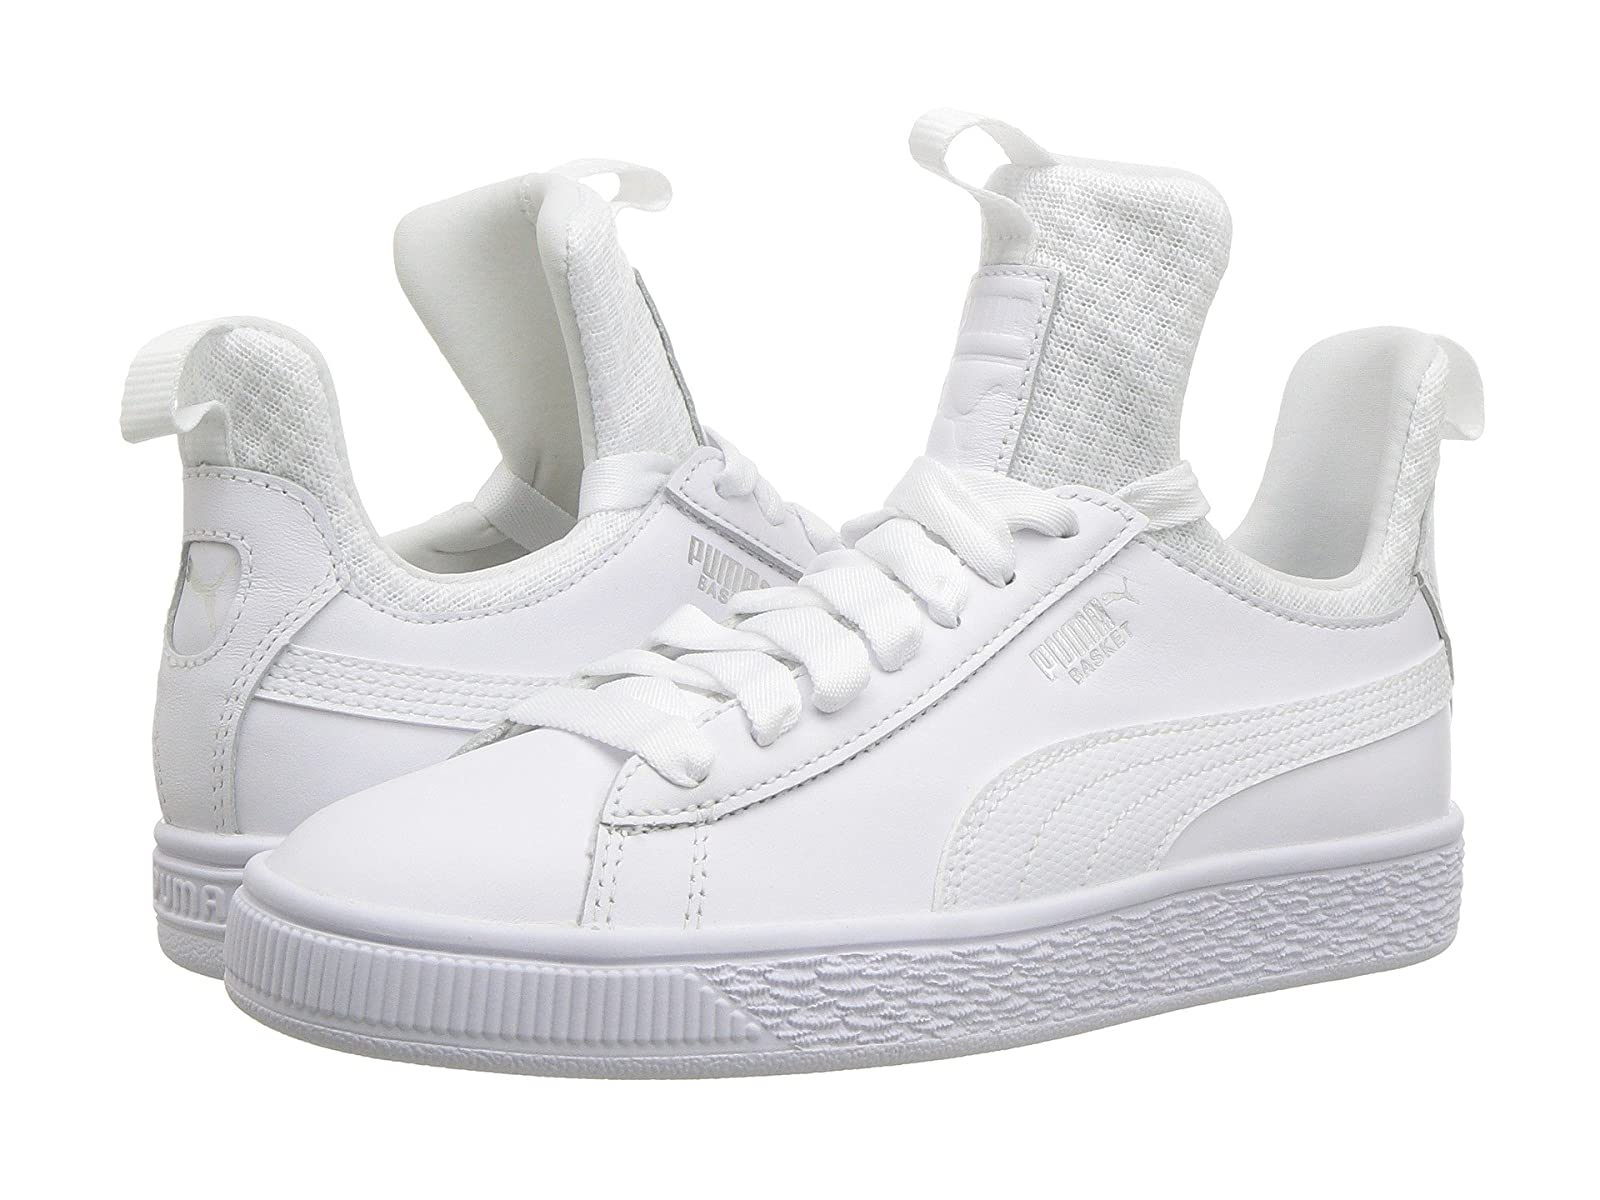 Puma Kids Basket Fierce EP (Big Kid)Cheap and distinctive eye-catching shoes